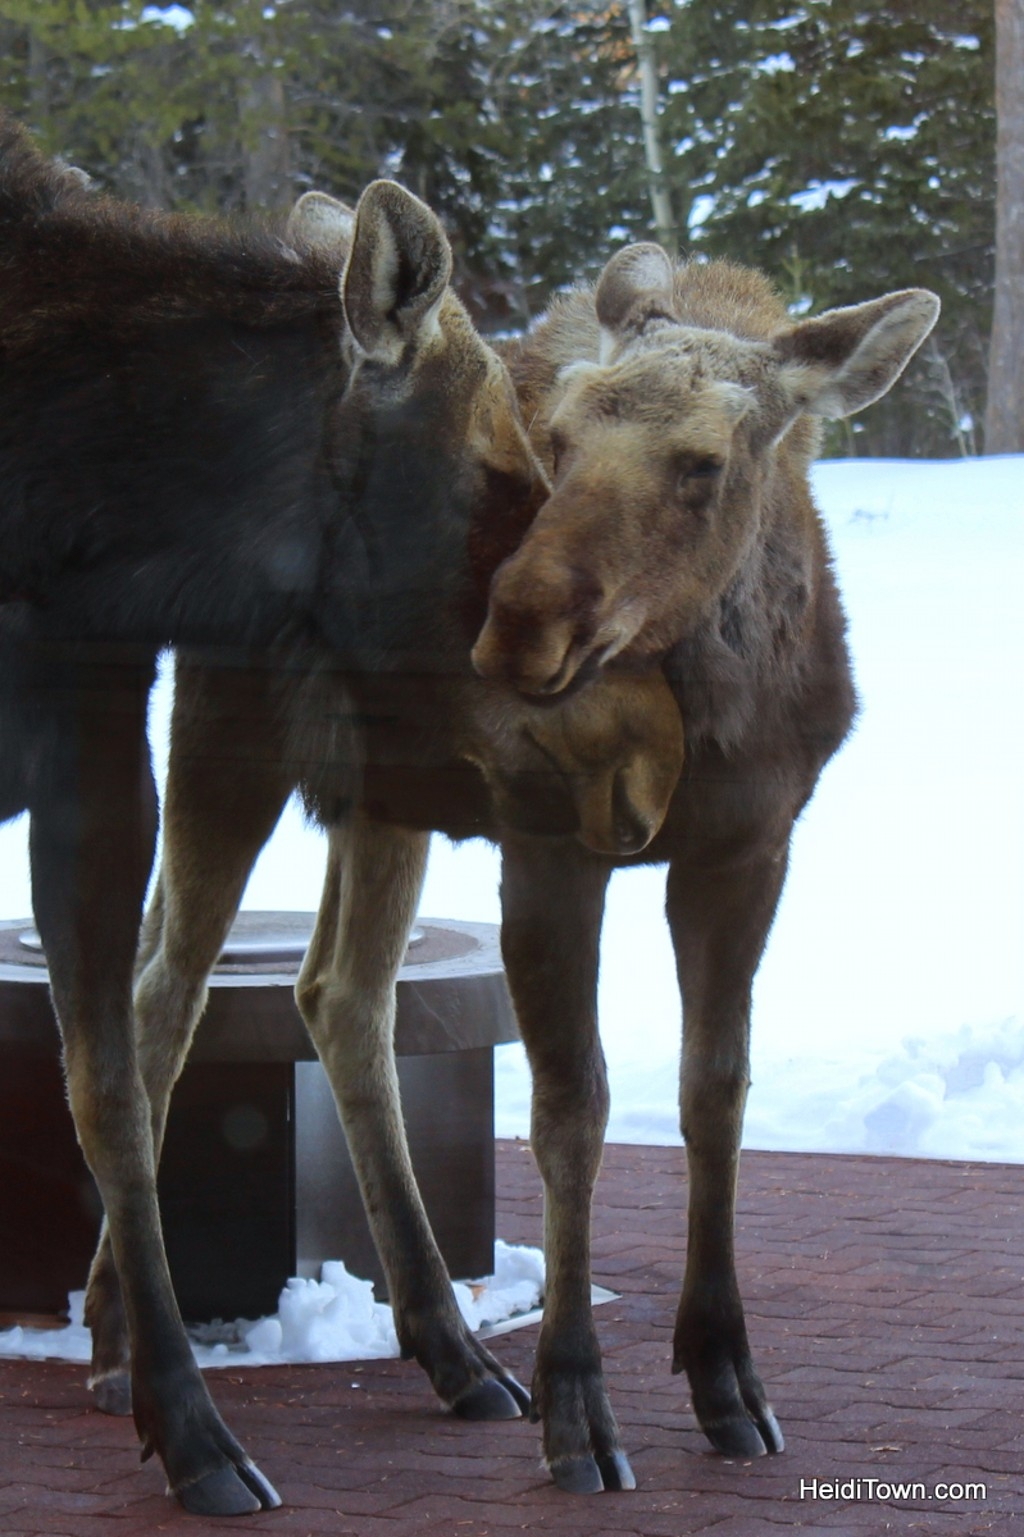 Enjoy Moose Neighbors with a Moving Mountains Vacation Home. Moose in Steamboat Springs 1. HeidiTown.com